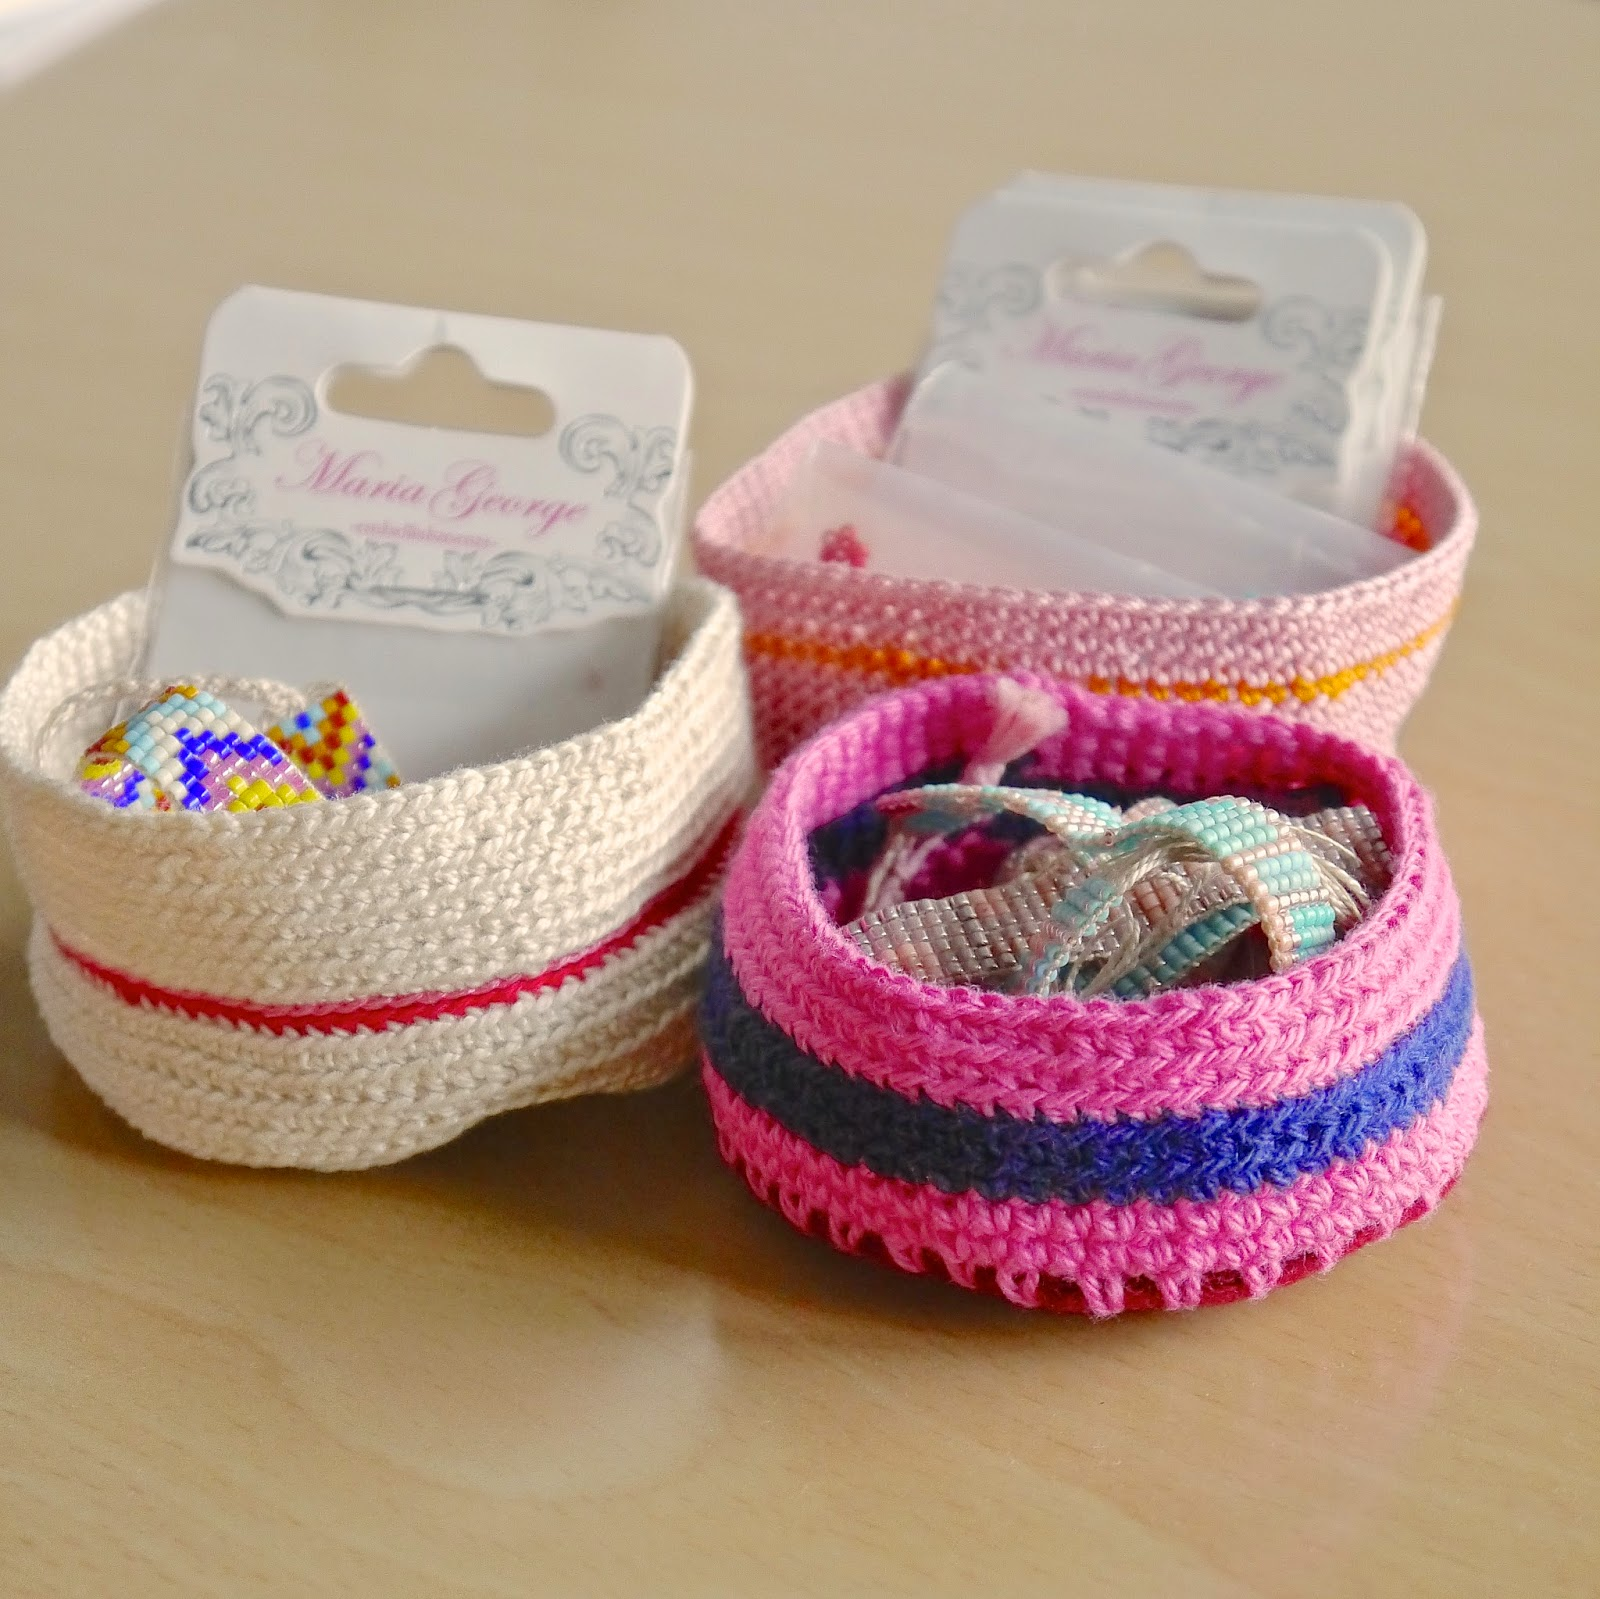 Make it // Crochet Mini bowls